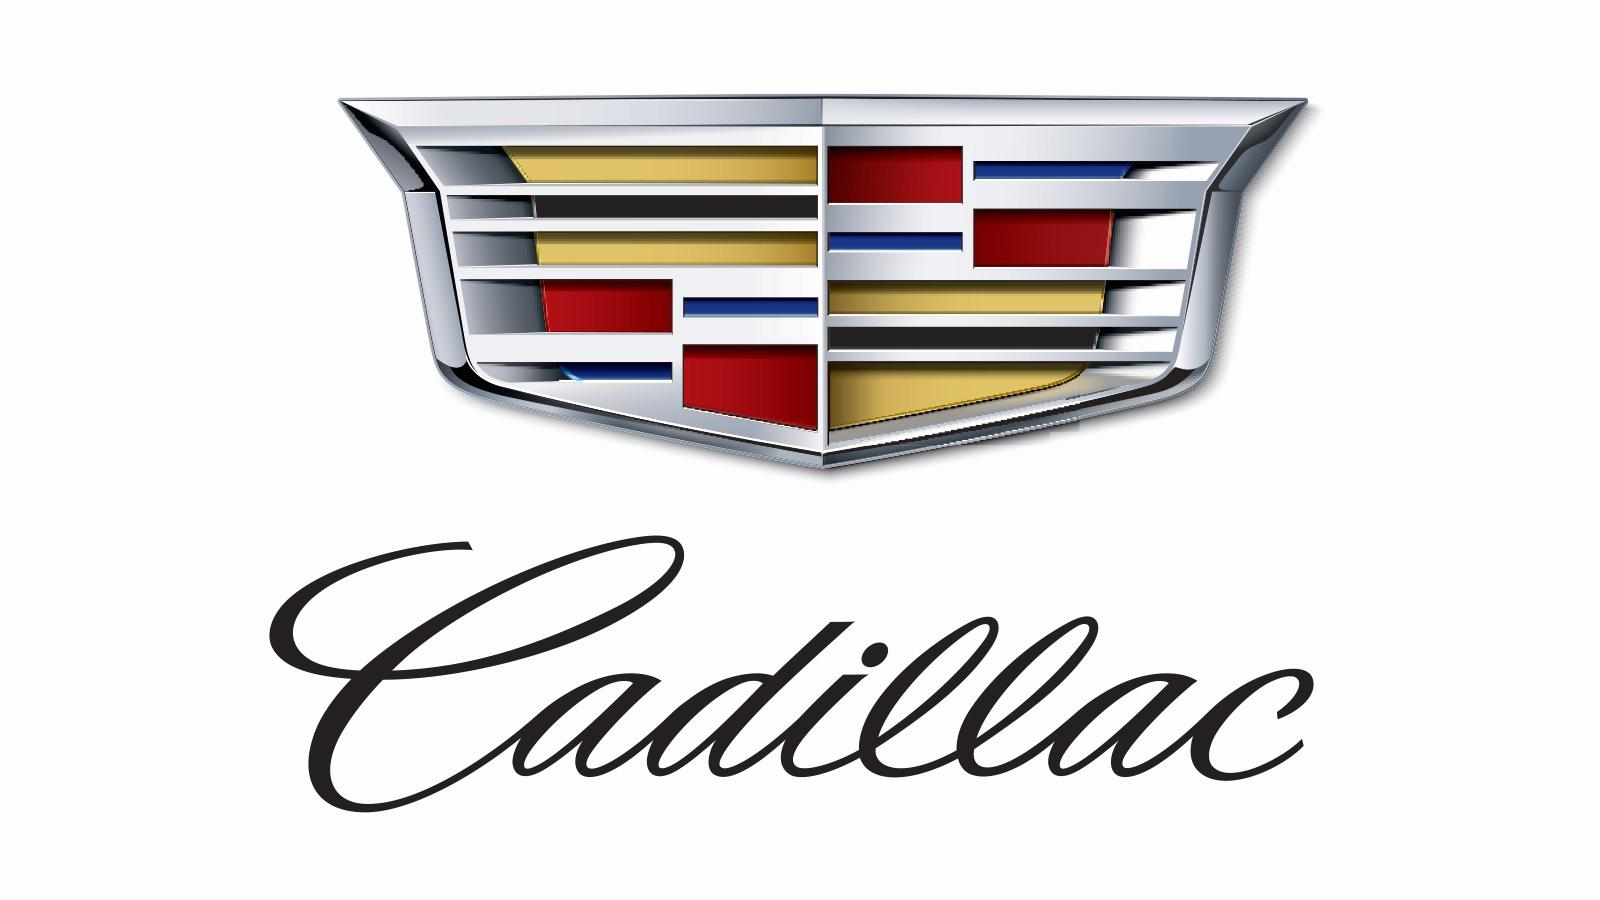 Cadillac Logo History Of the 9 Hd Cadillac Logo Wallpapers